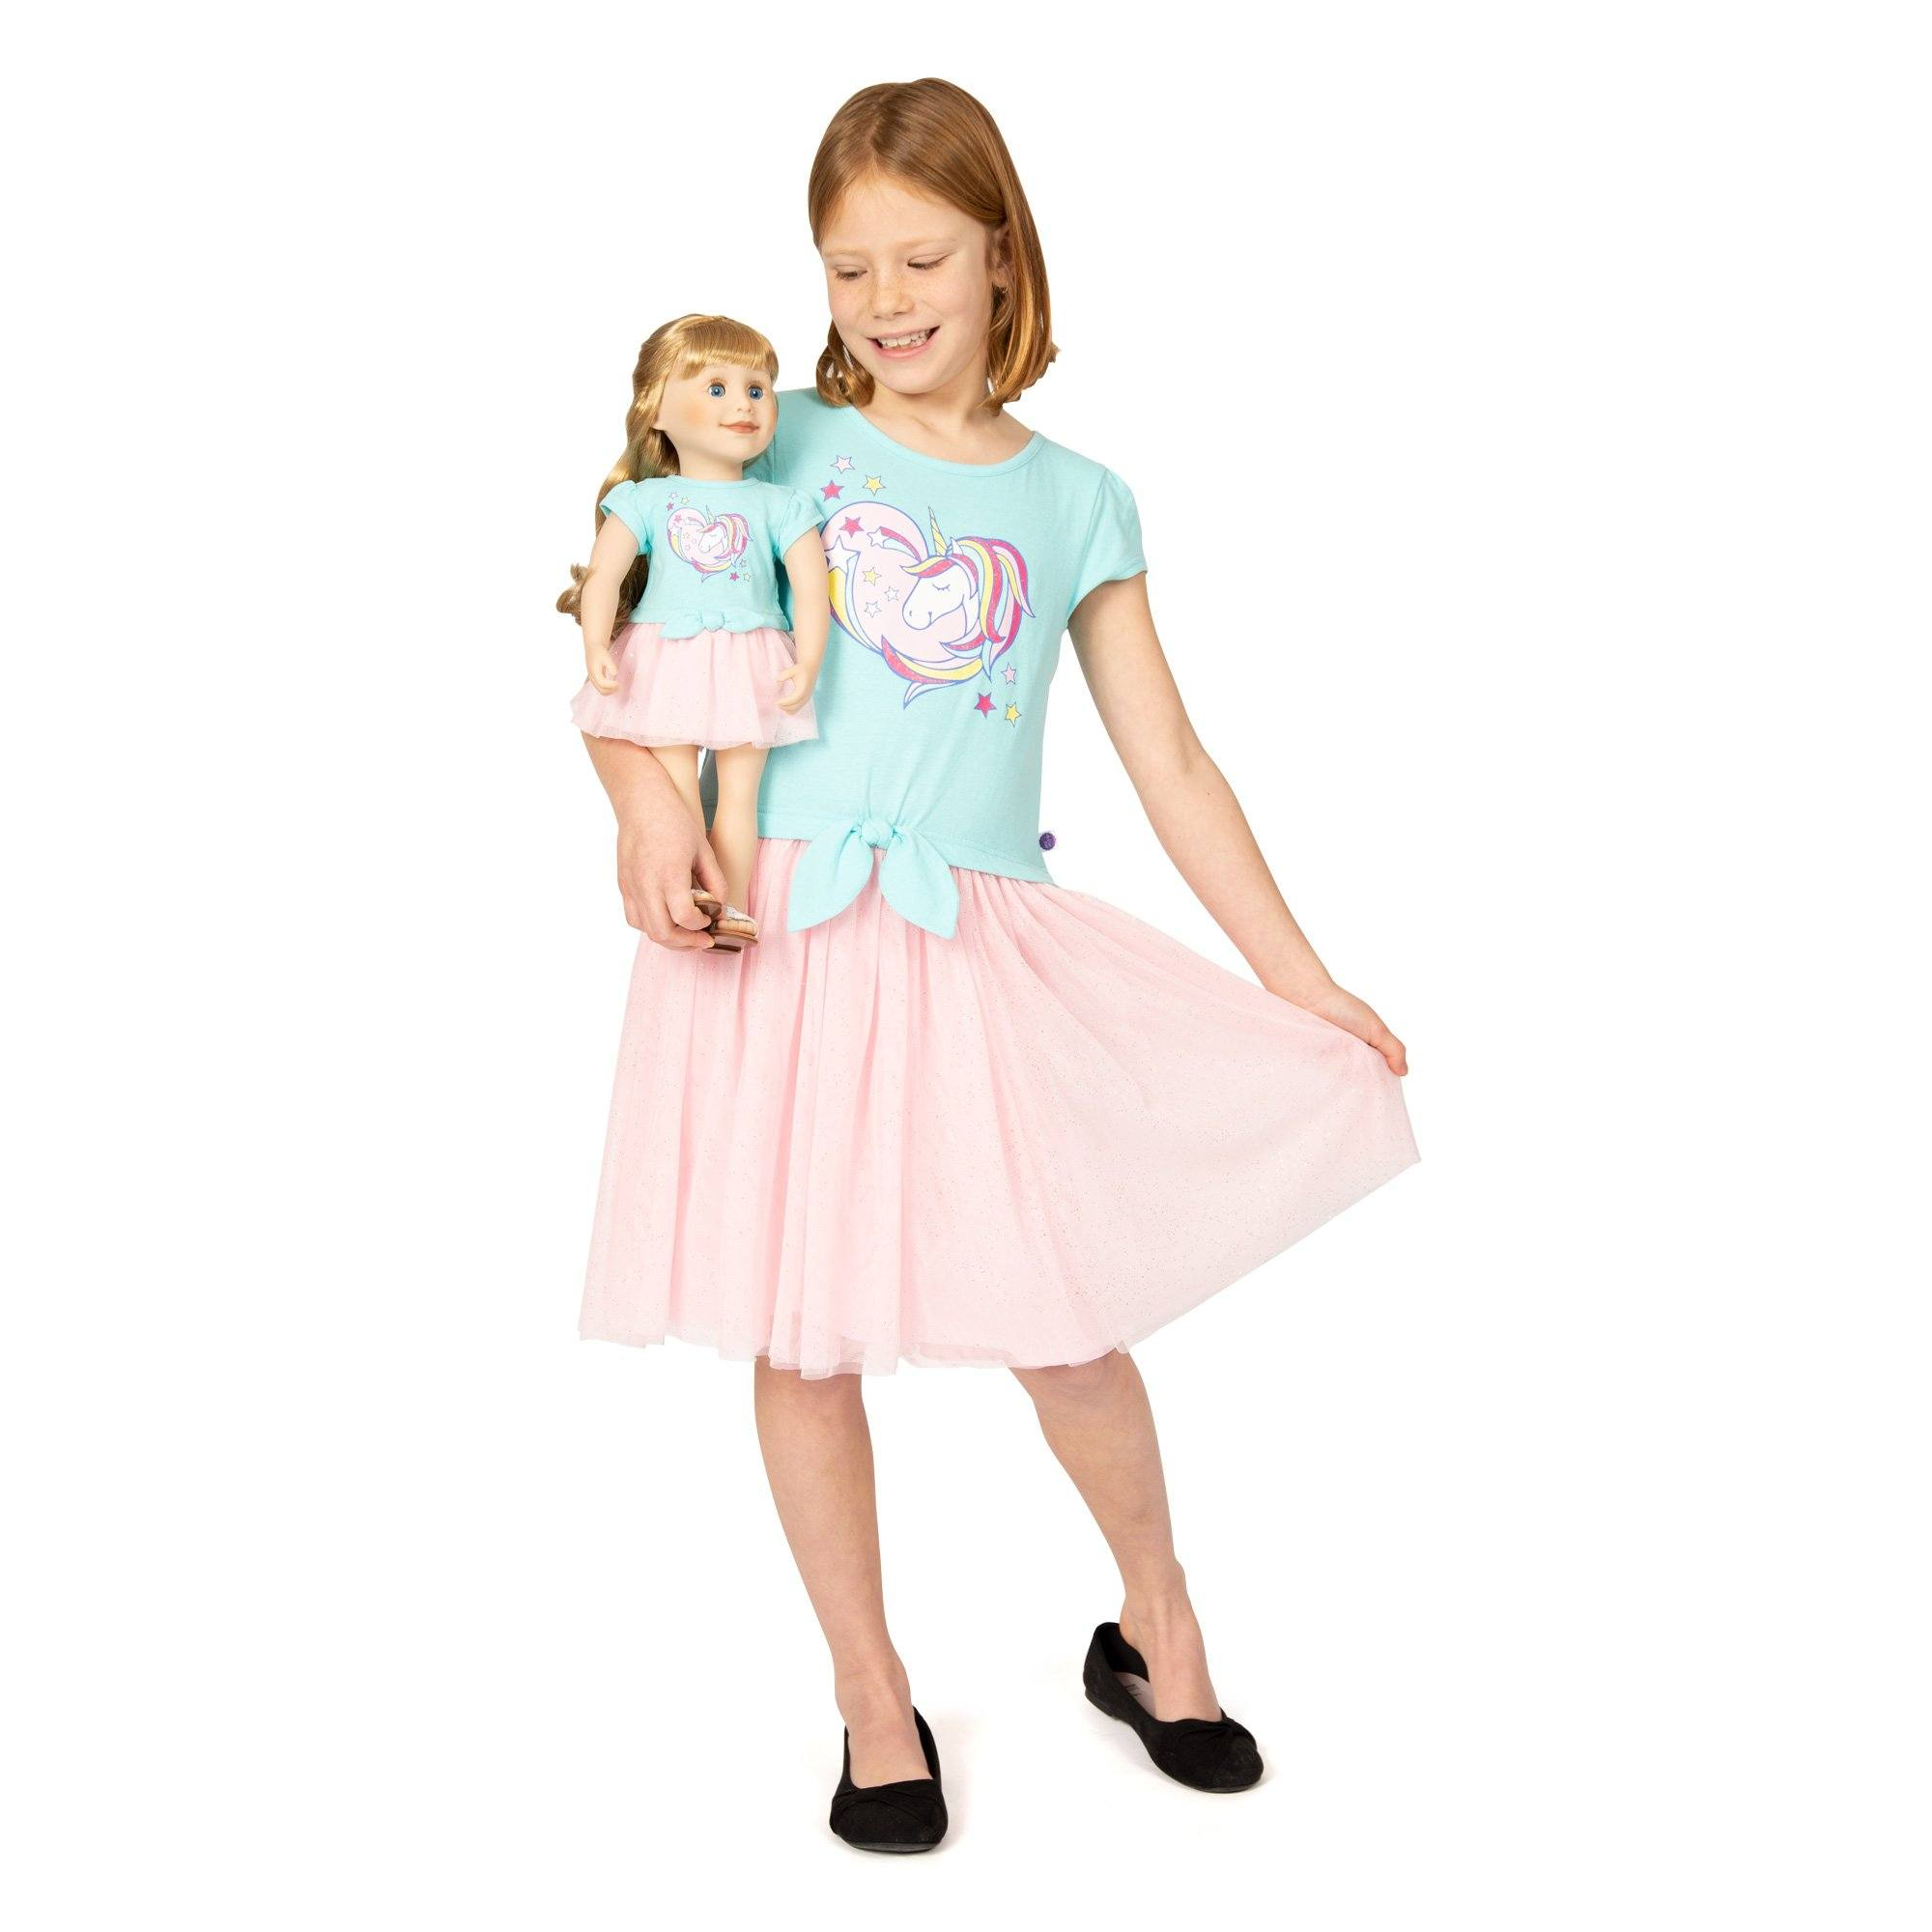 Girl and Doll Set: Unicorn Dress in Pink and Aqua